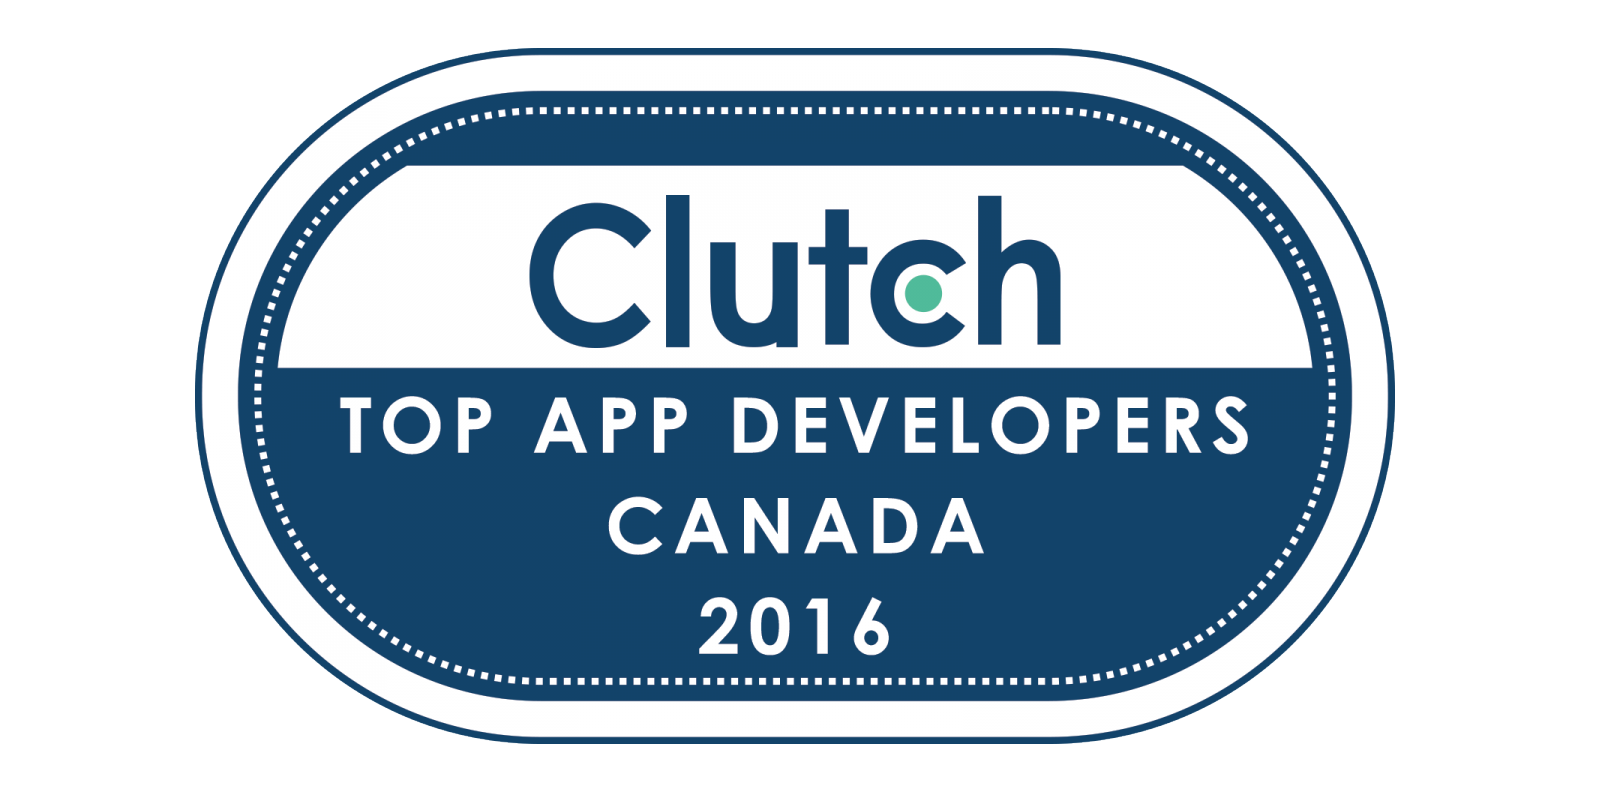 Top app developers Canada 2016